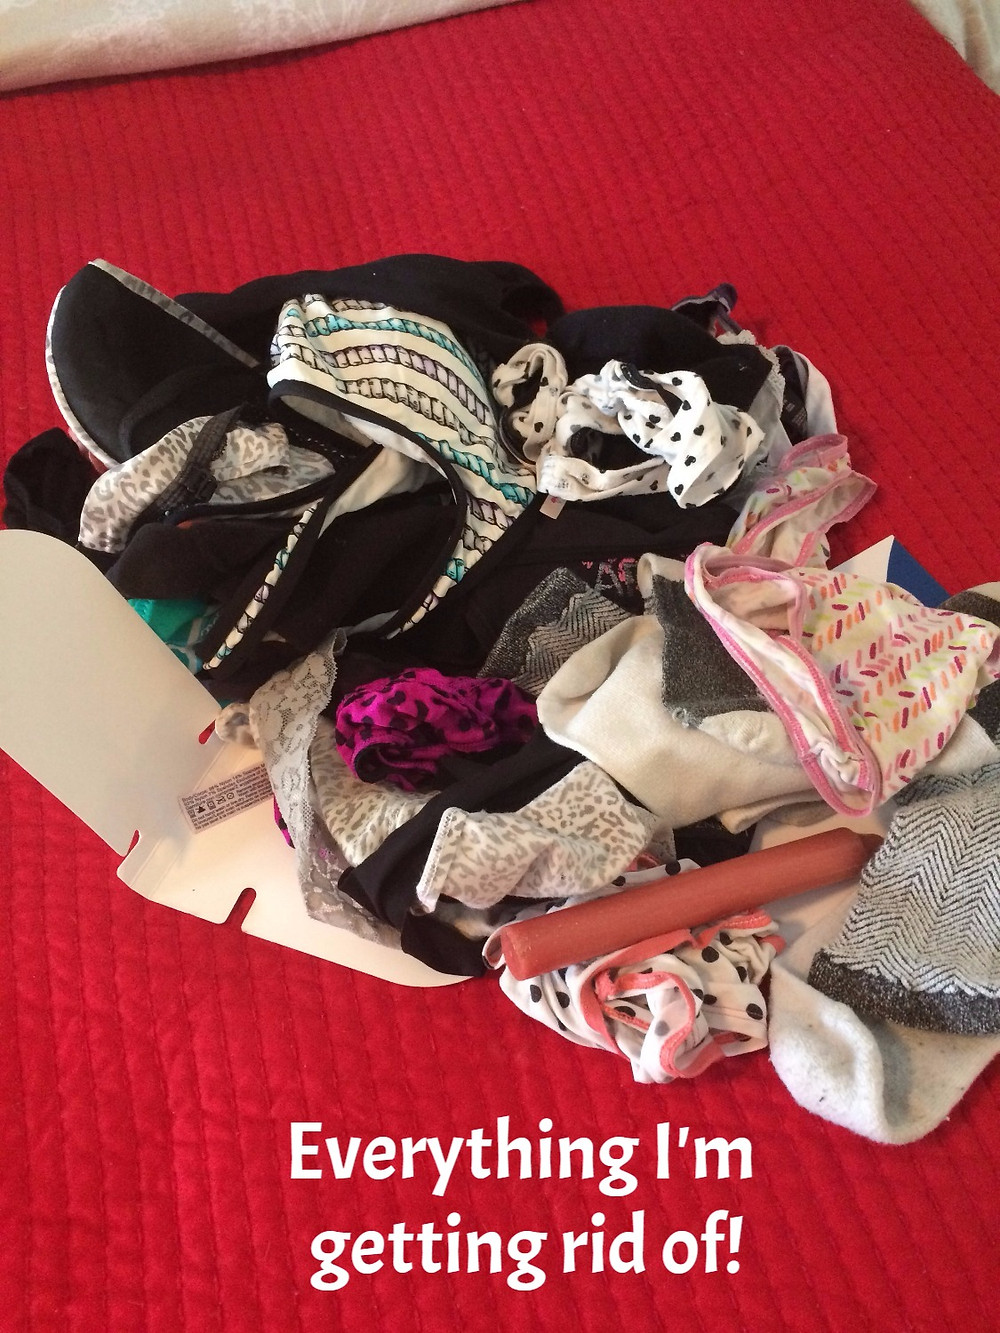 throw away old used up underwear